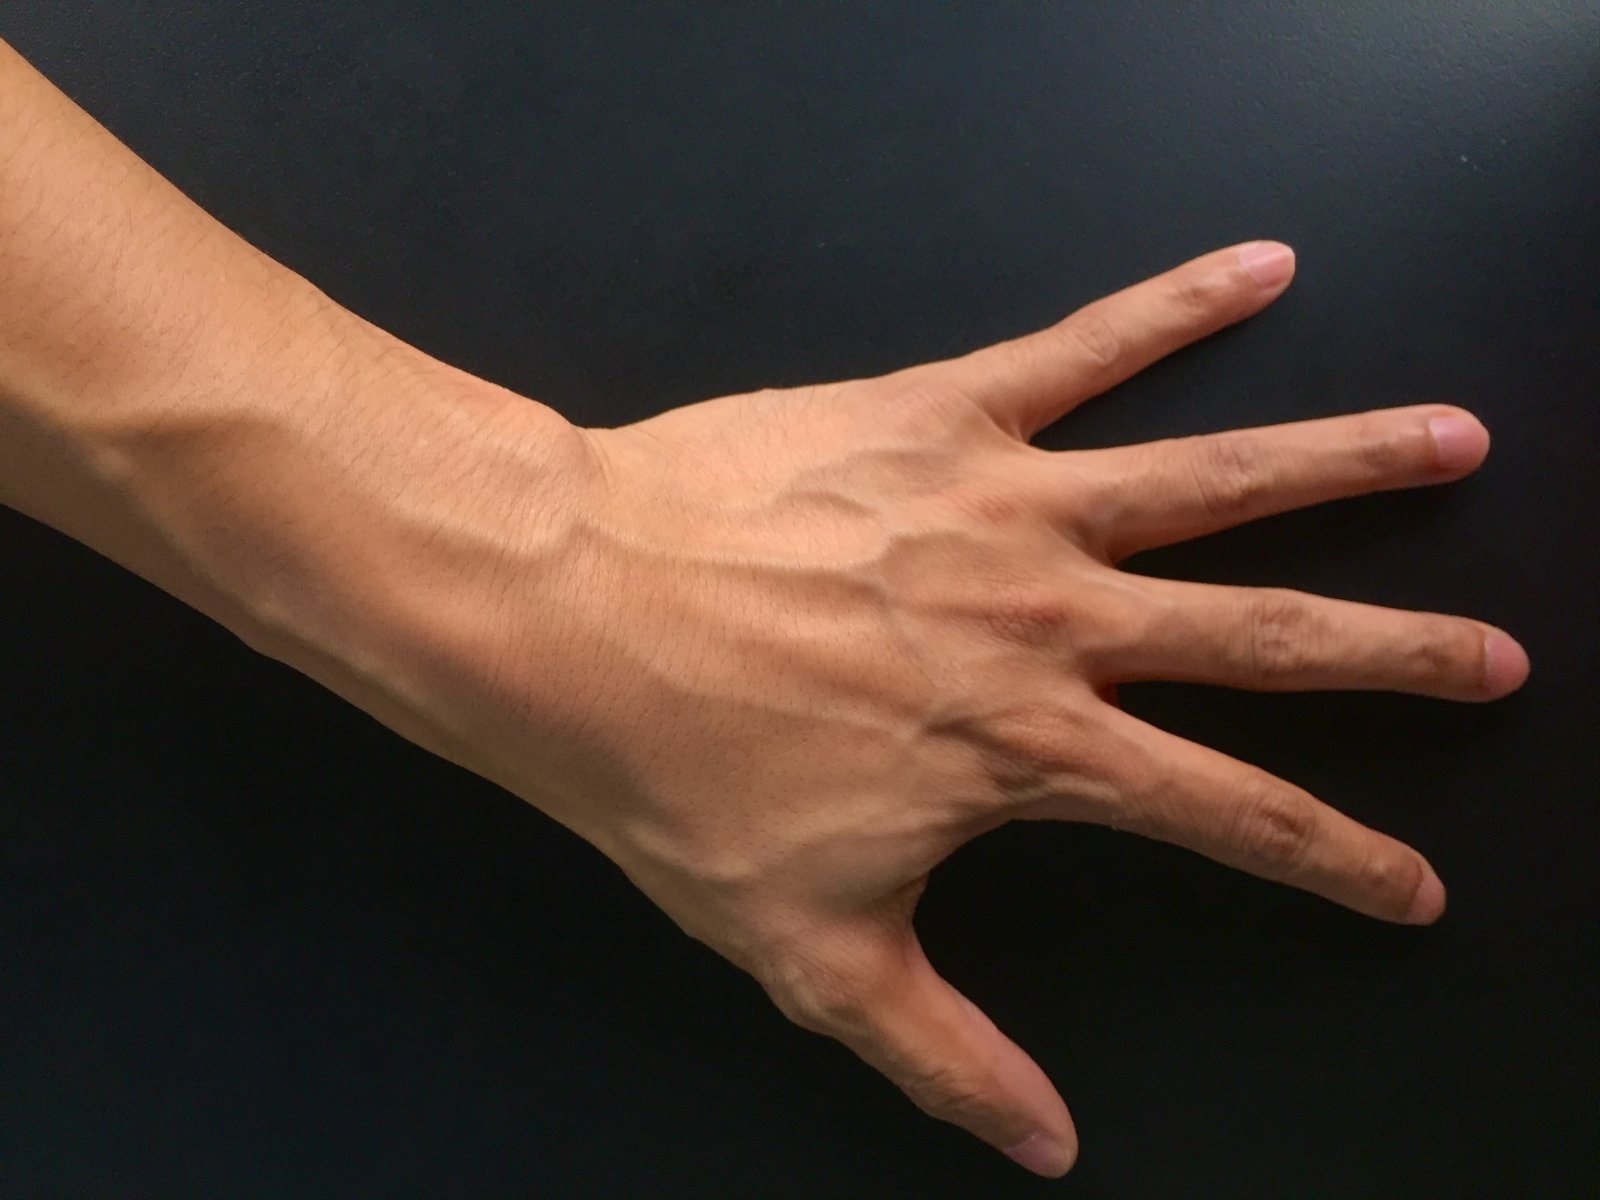 Hackers defeat vein authentication by making a fake hand | DeviceDaily.com